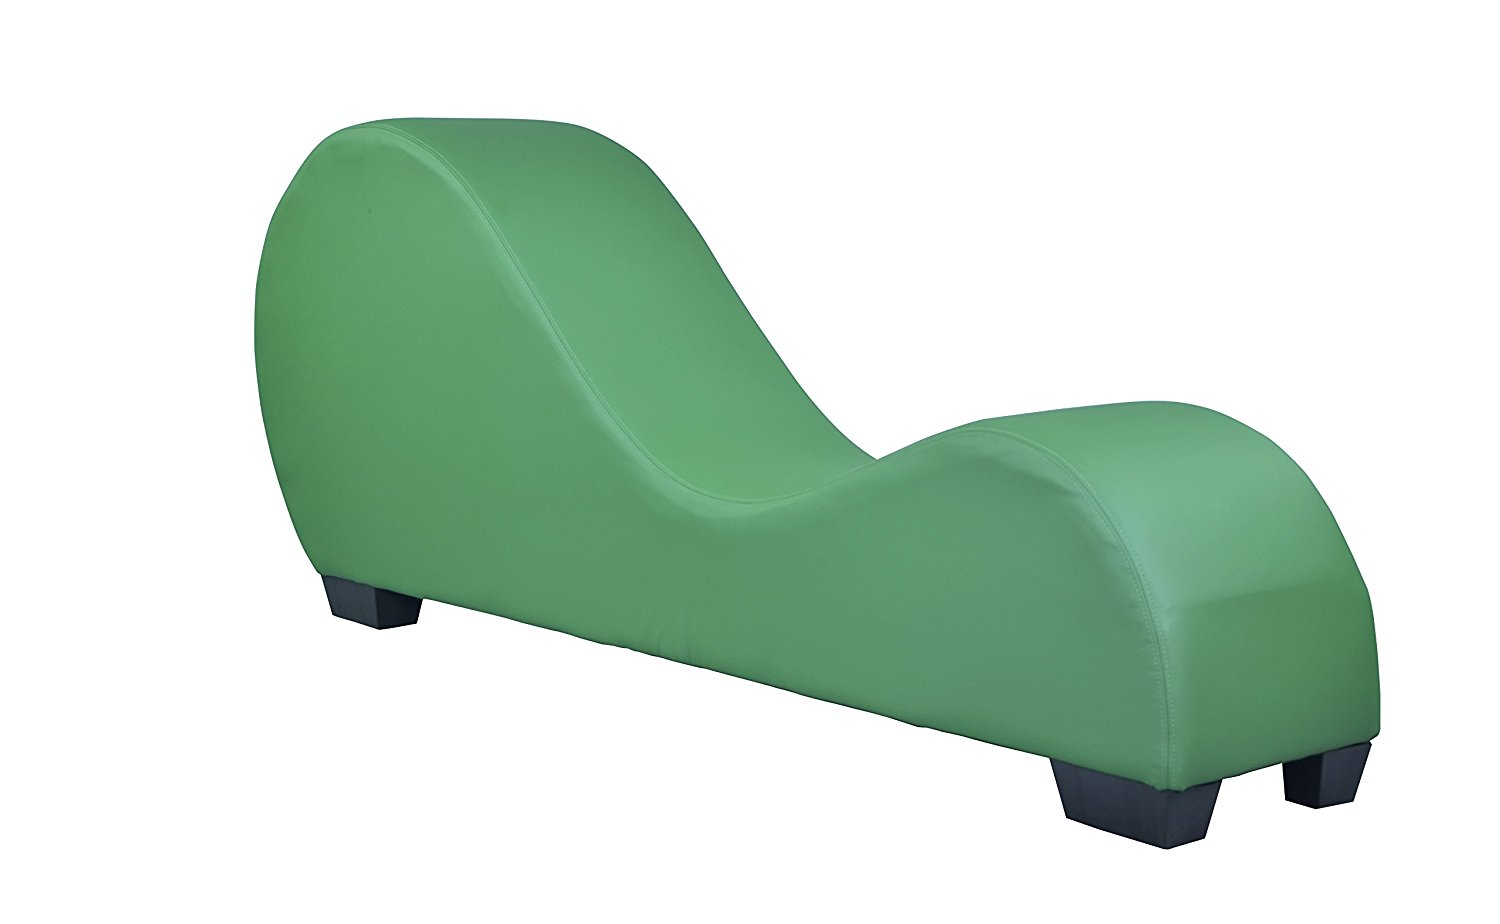 New Green Leather Yoga Chair Stretch Sofa Relax Sex Chair Love Making    Walmart.com